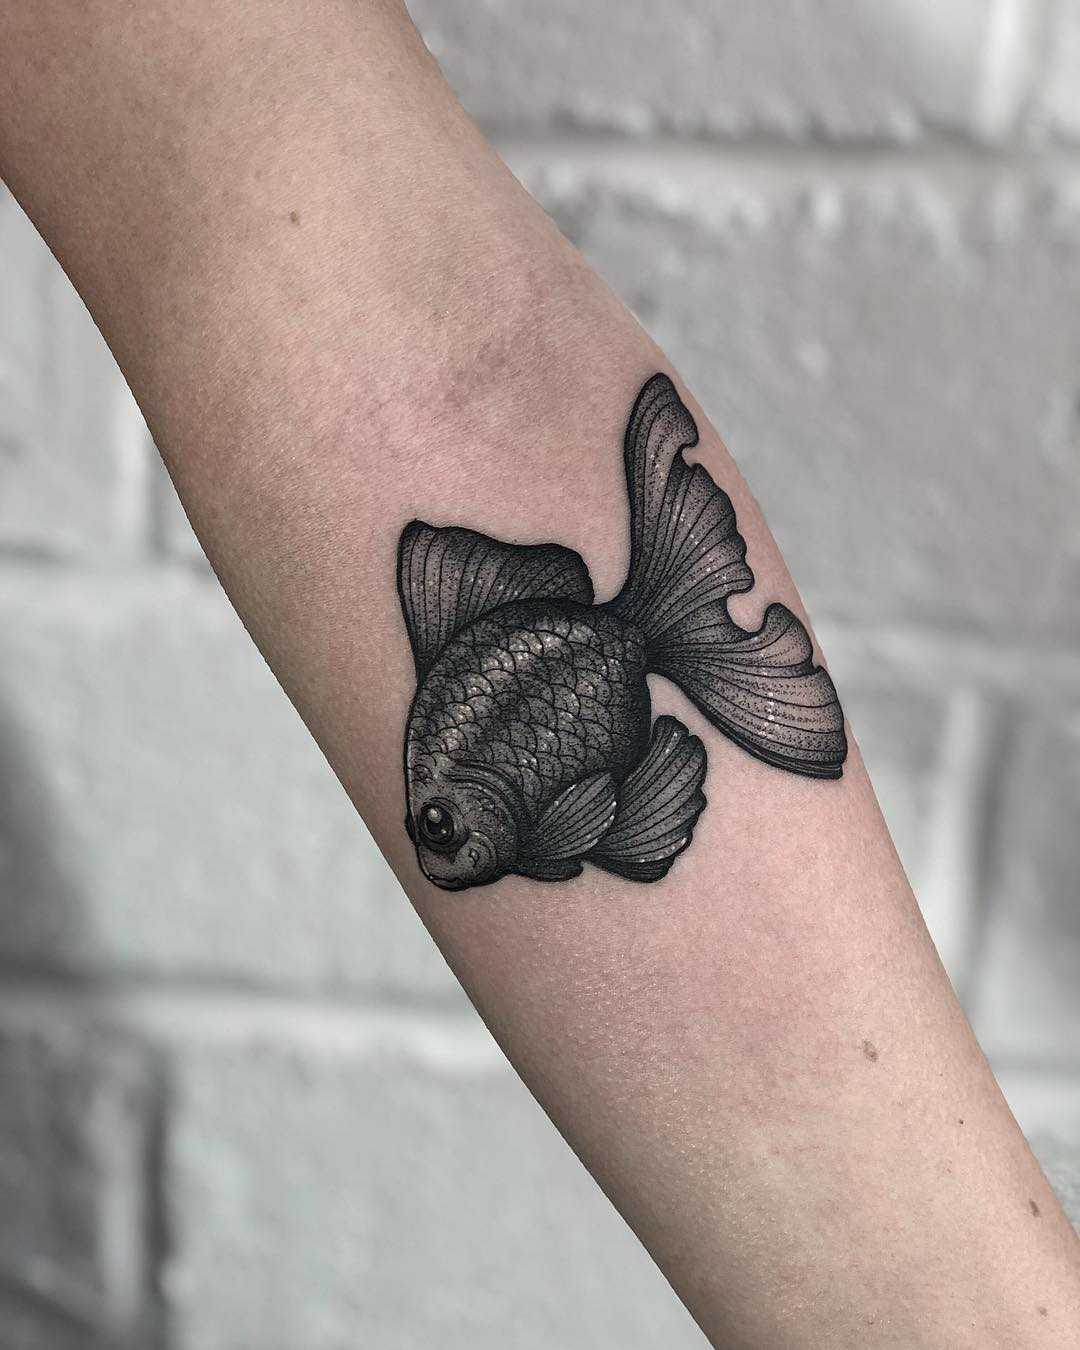 Black telescope fish tattoo by Lozzy Bones